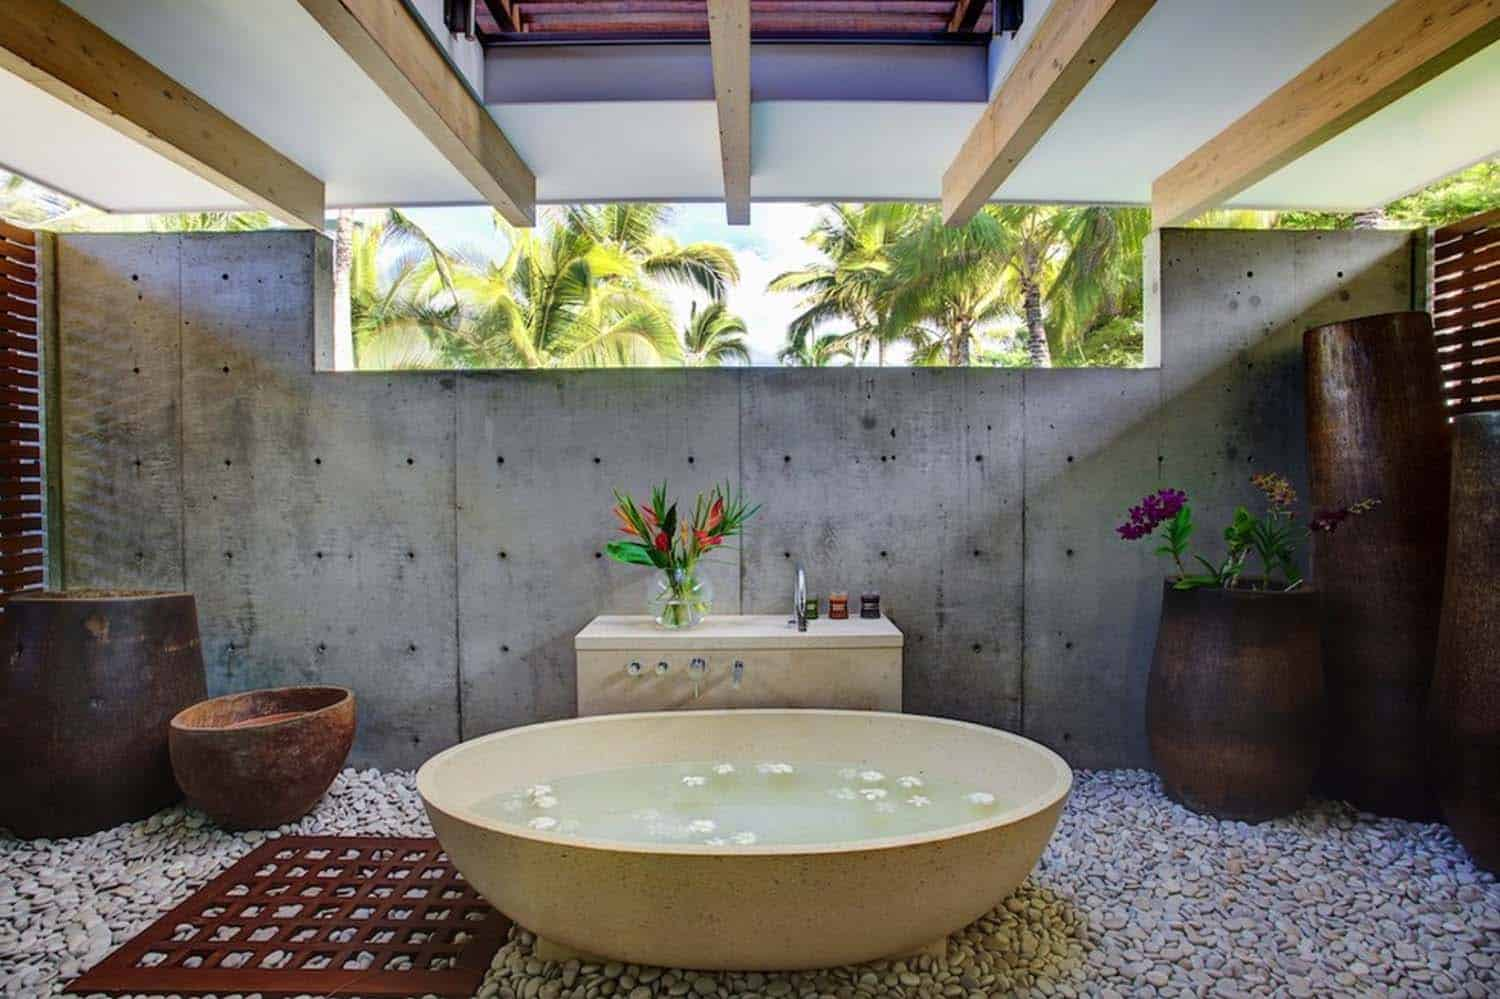 Tropical Maui Residence-Bossley Architects-14-1 Kindesign